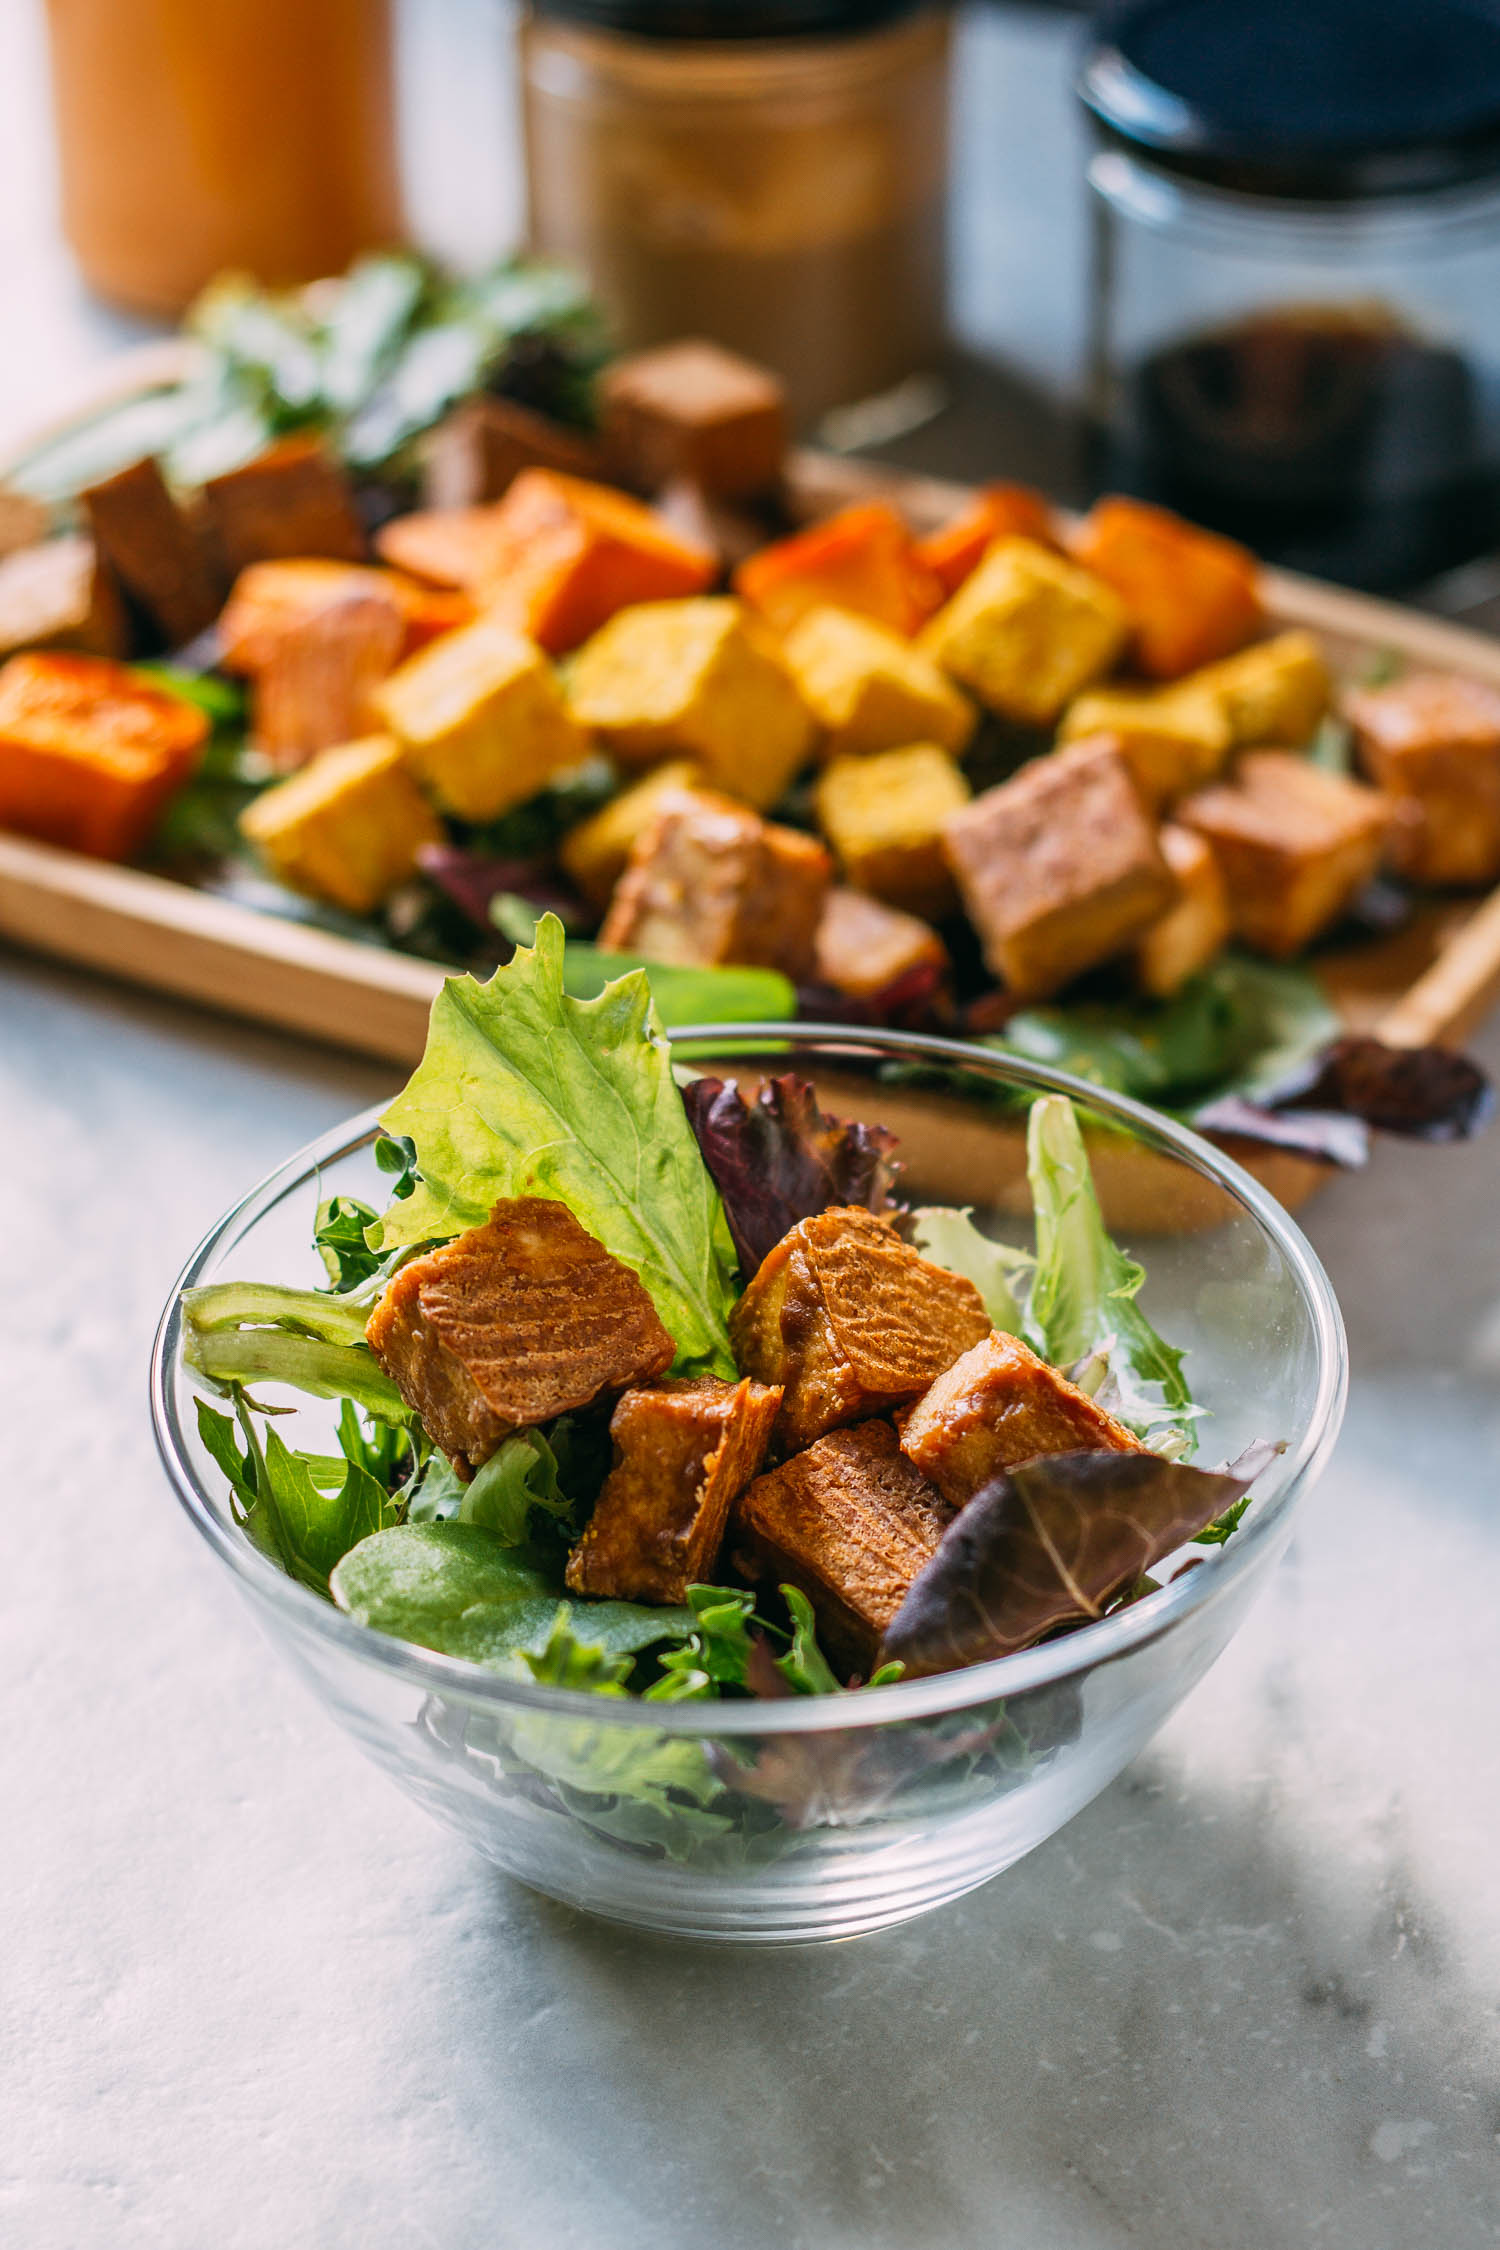 Savory Oil-Free Baked Tofu - Four Ways #tofu #baked #appetizer #snack #entree #recipe #meatless Monday #plant-based #vegan #oil-free #protein #vegetarian #buffalo #liquid aminos #nutritional yeast #recipes #thai #asian #wfpbno #wfpb